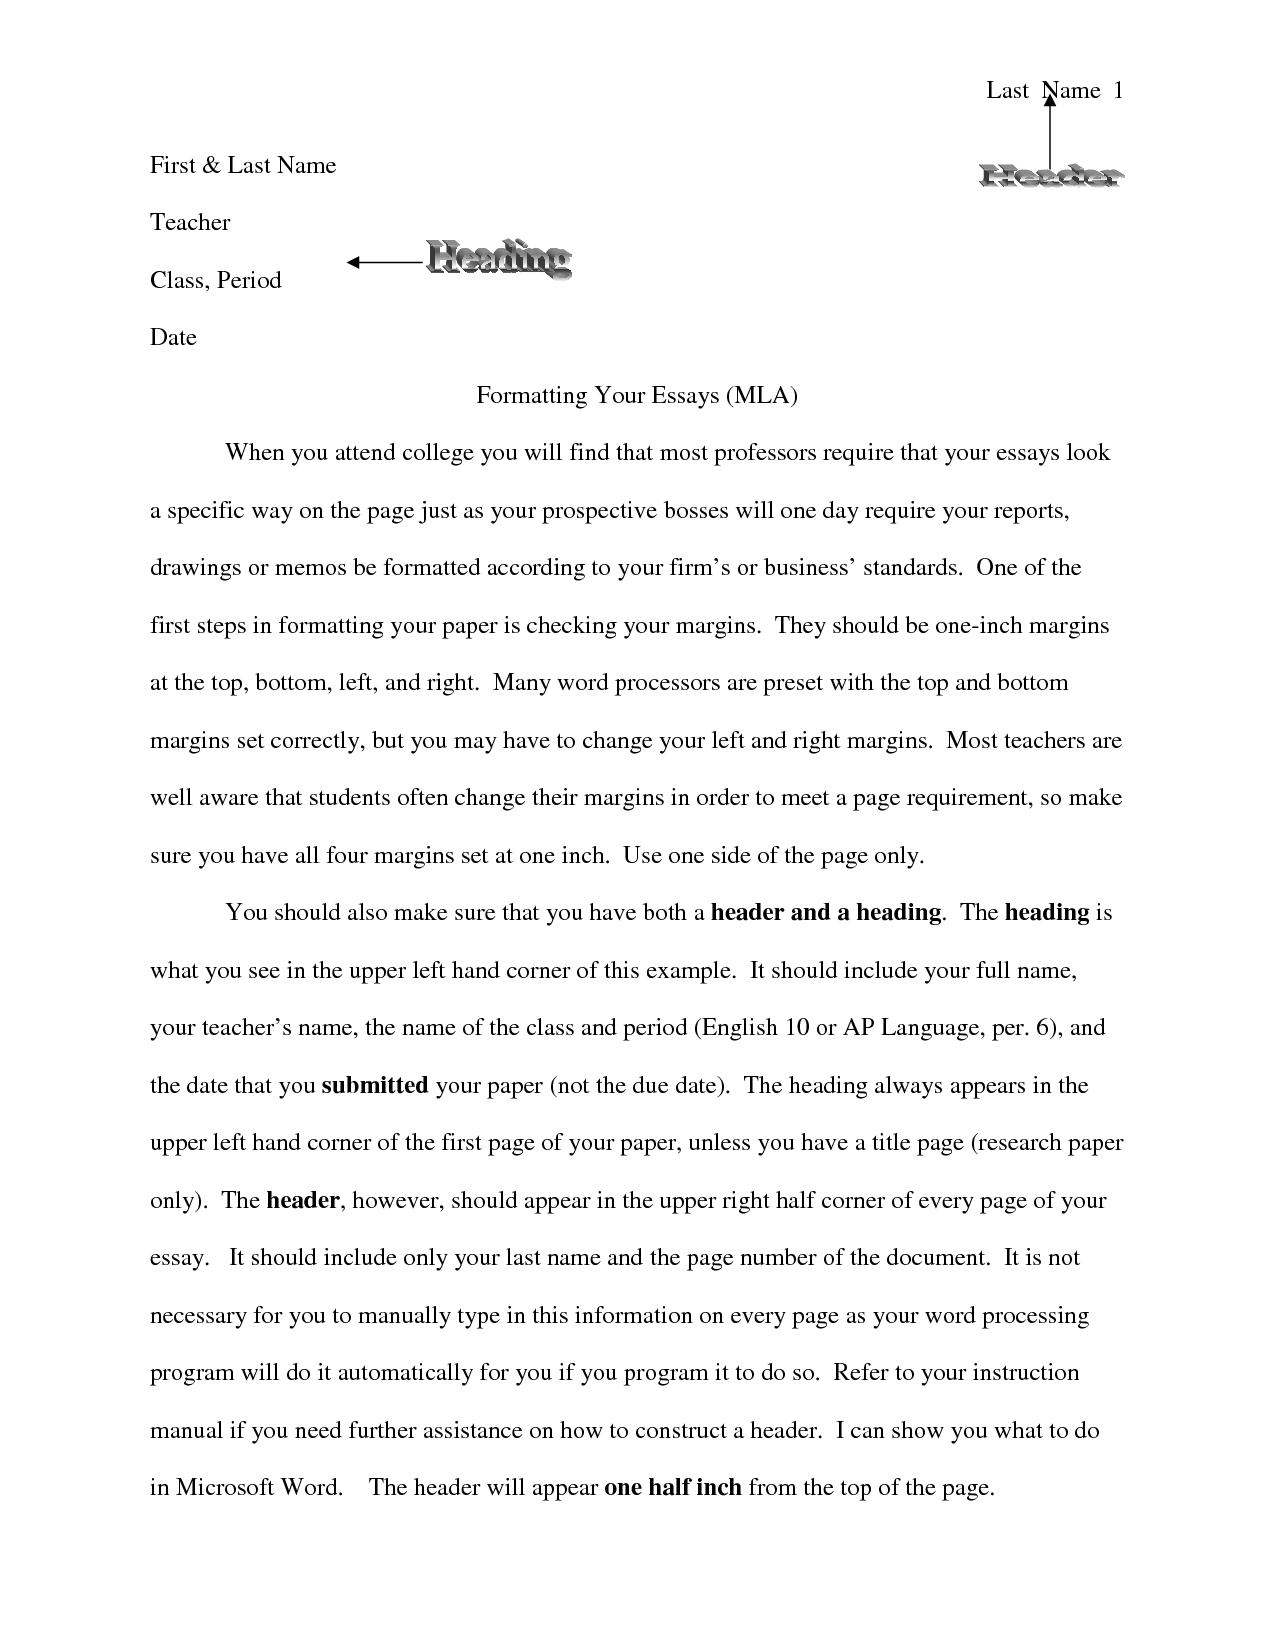 fashion essays for college  · what do you think of my college entrance essay for the fashion institute of technology revised version.